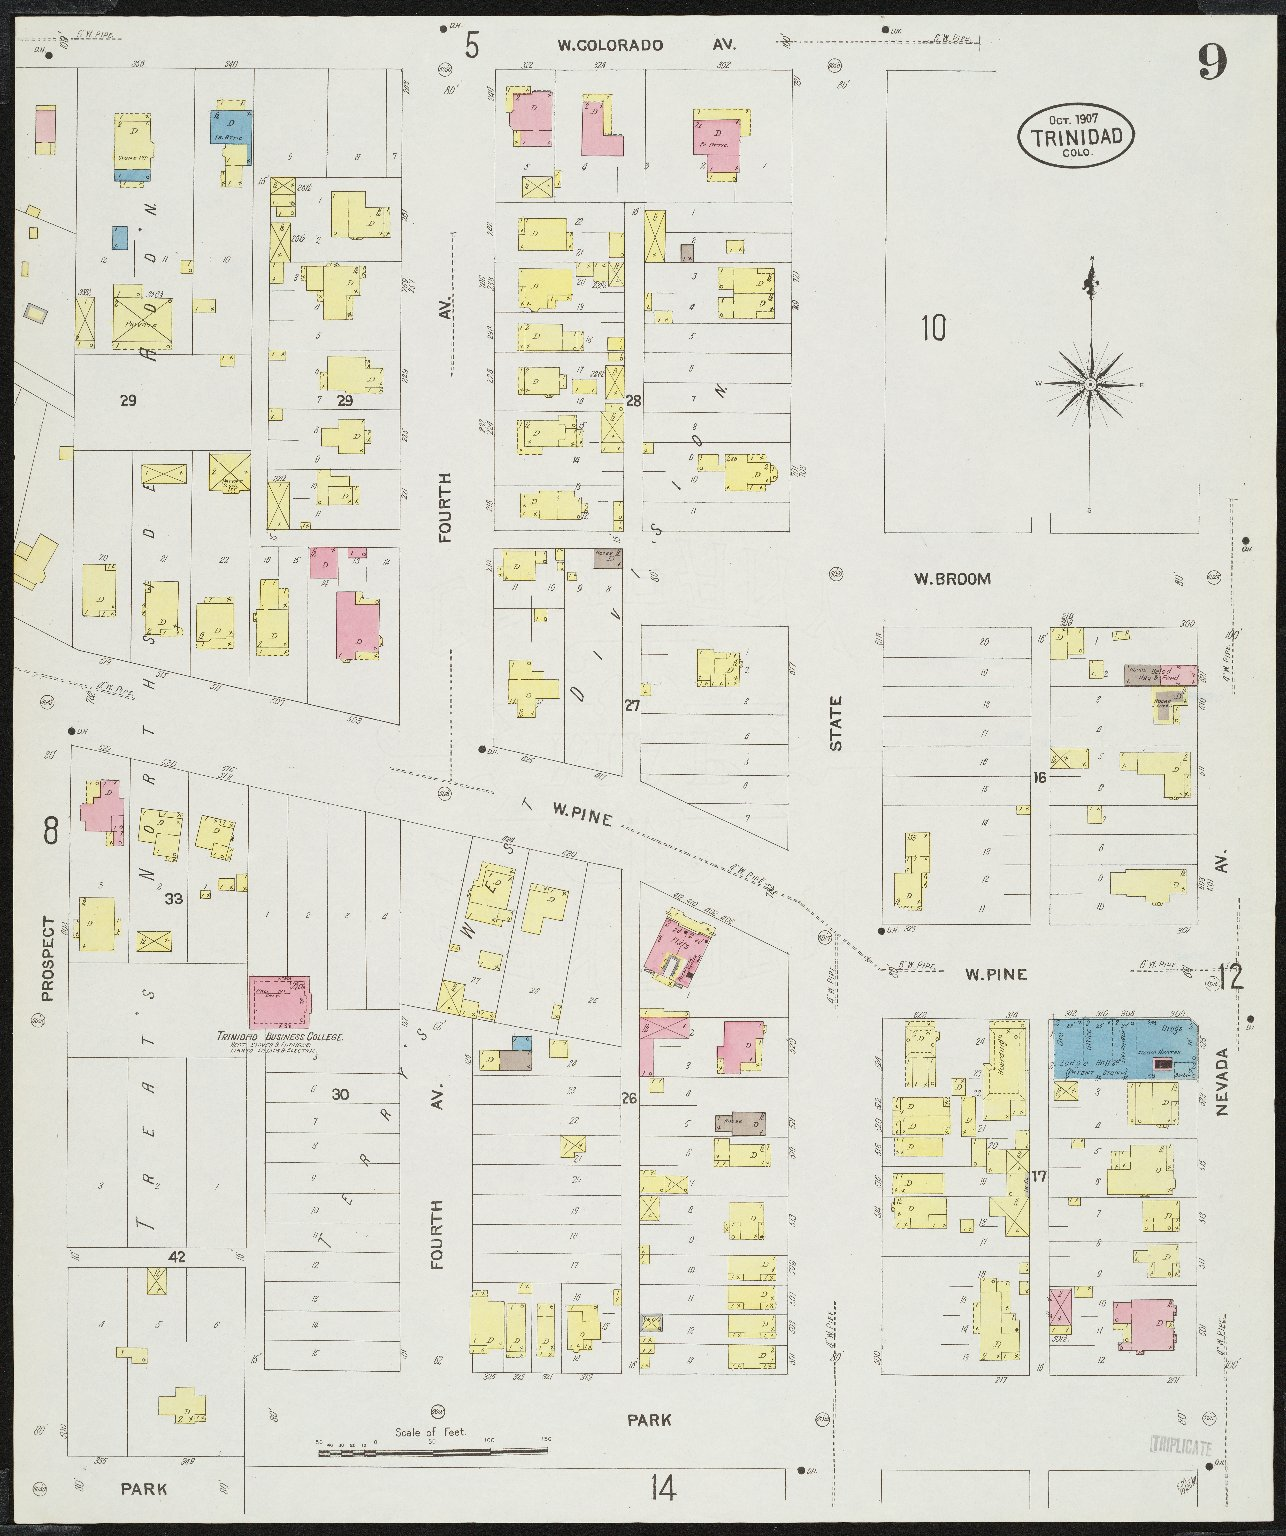 Insurance maps of Trinidad, Las Animas Co., Colorado